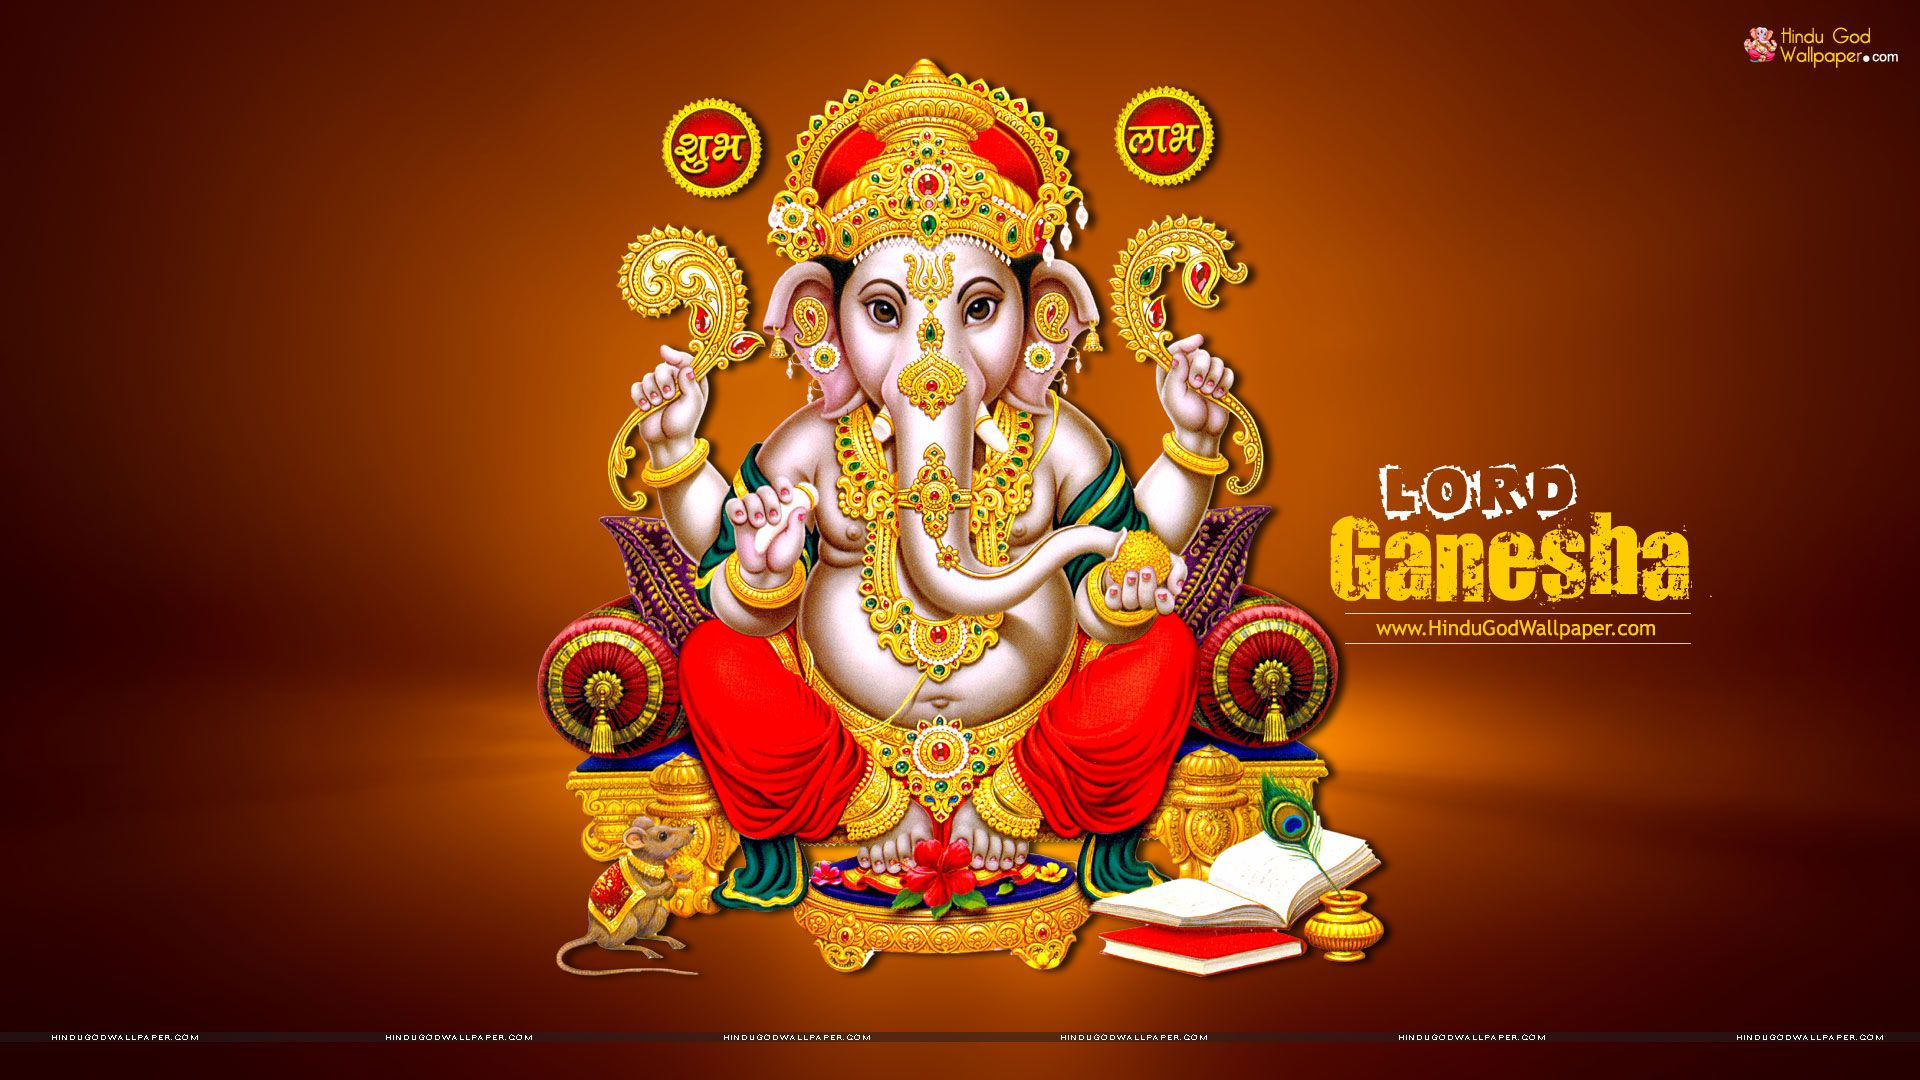 Lord Ganesha Wallpaper 1920x1080 Hd Wallpapers 1080p Ganesh Images Ganesha Pictures Lord Hanuman Wallpapers